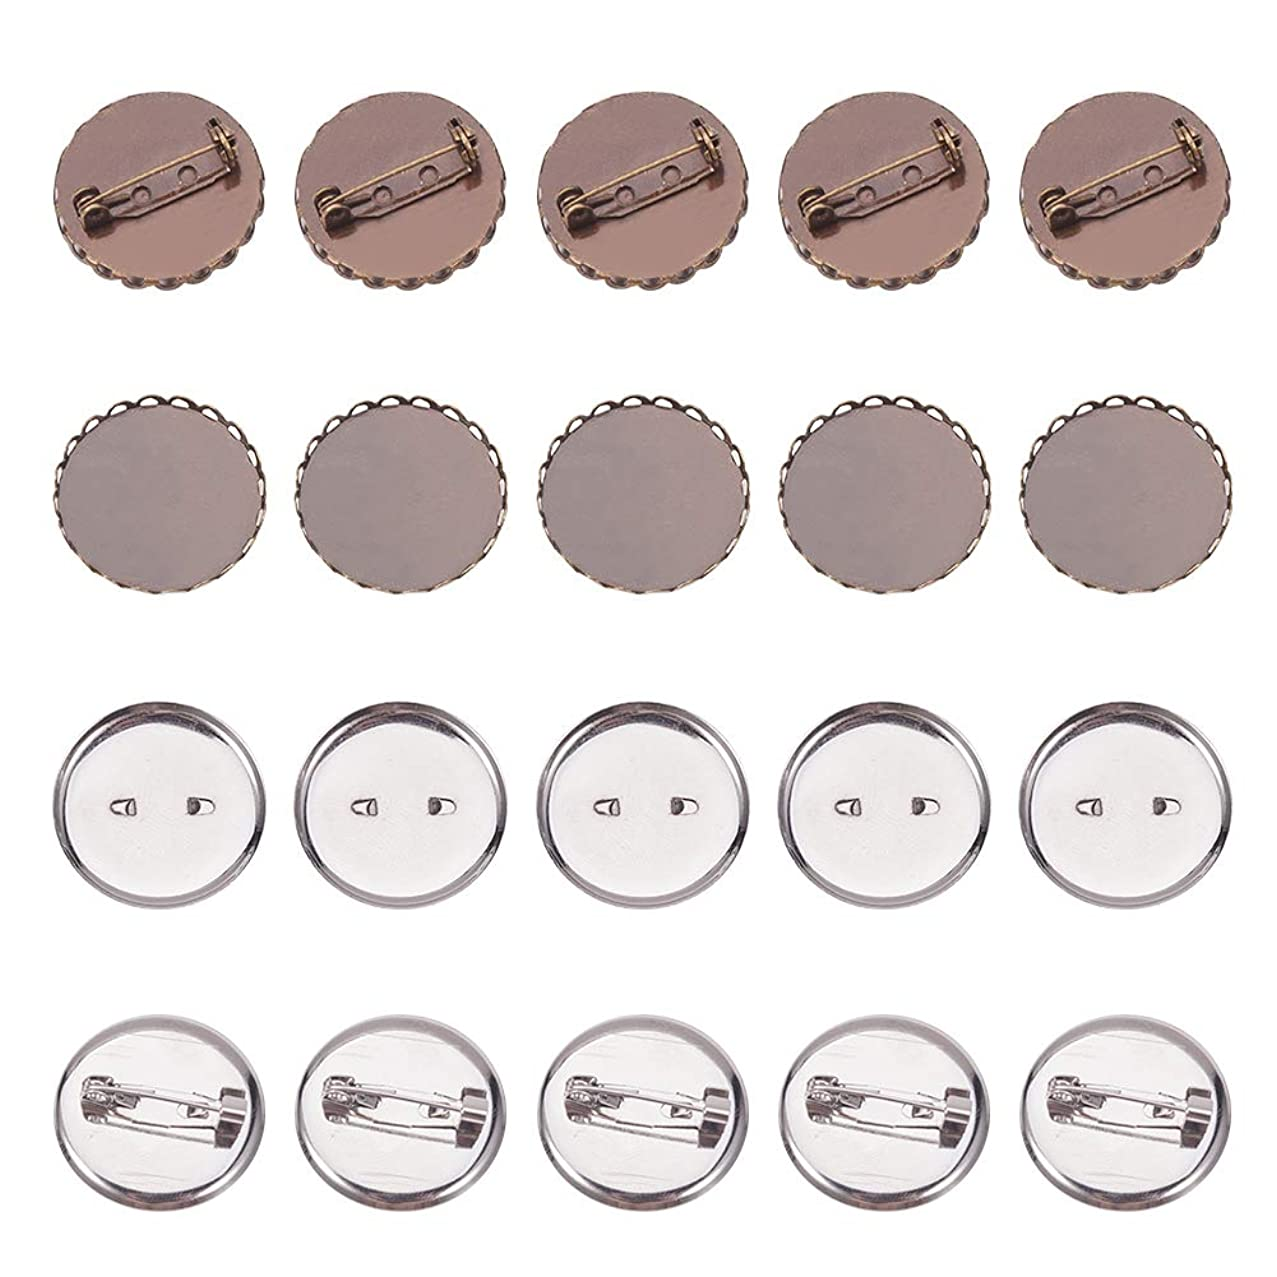 PandaHall Elite 10 pcs 2 Styles 25mm Iron Brooch Clasps Pin Disk Base Pad Bezel Blank Cabochon Trays Backs Bar for Badge Corsage Name Tags Jewelry Craft Making,Antique Bronze/Platinum